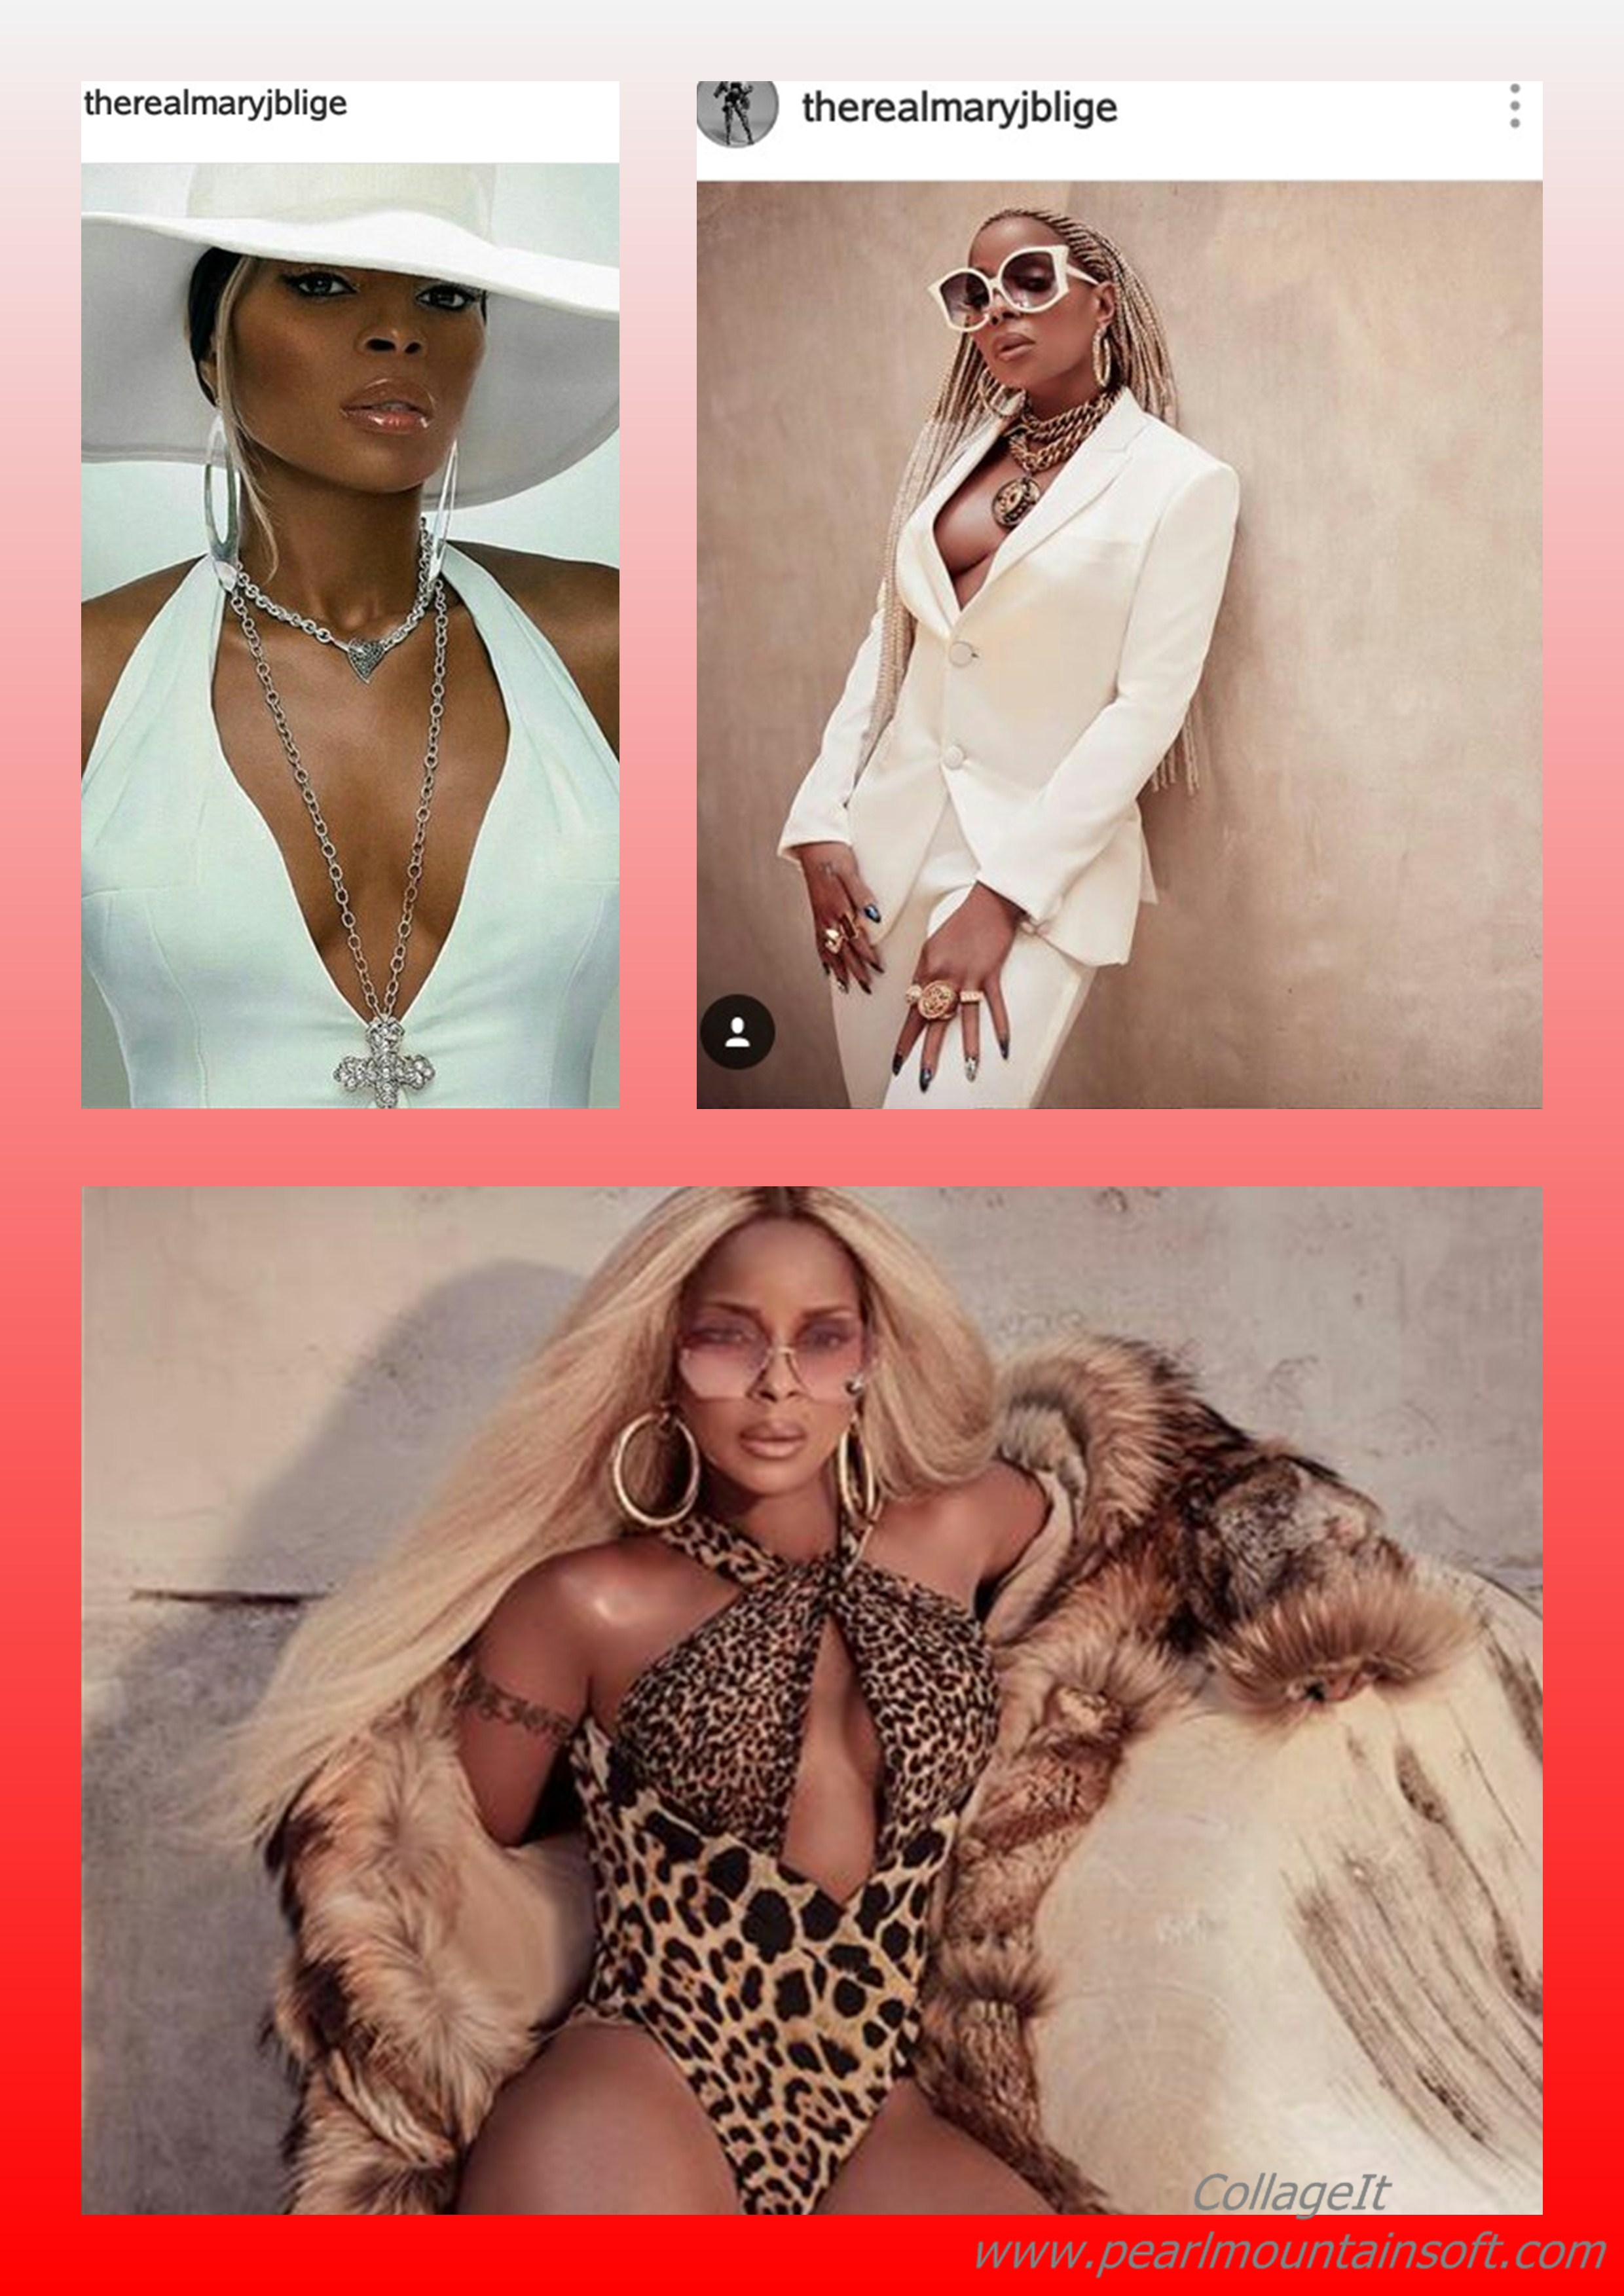 MARY J BLIGE'S PICTURE CRAZE FOR THE WEEK; Blazing, Sexy, Weird, Modest or Something else?